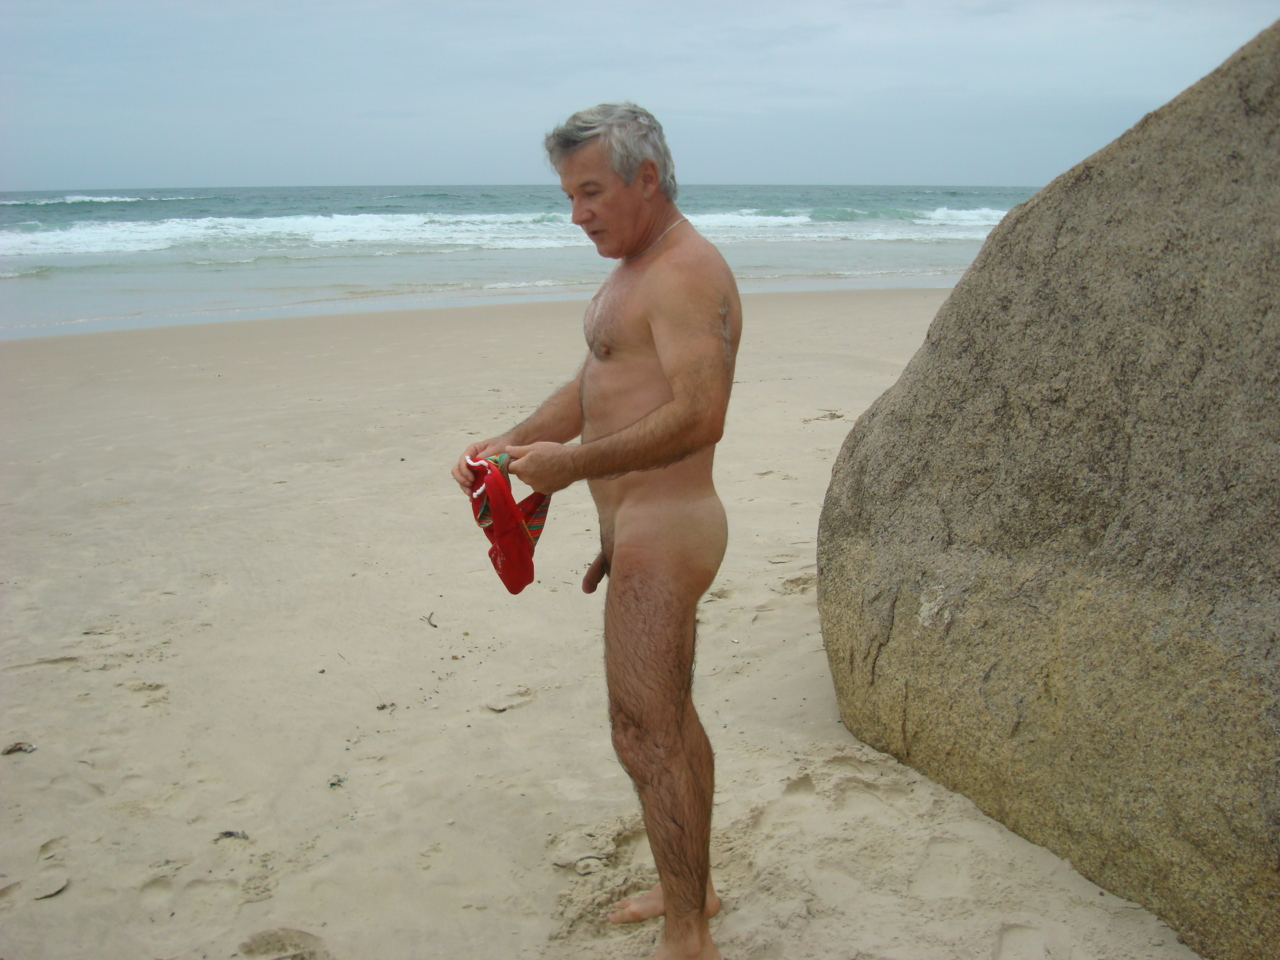 Beach male and female nudes adult images